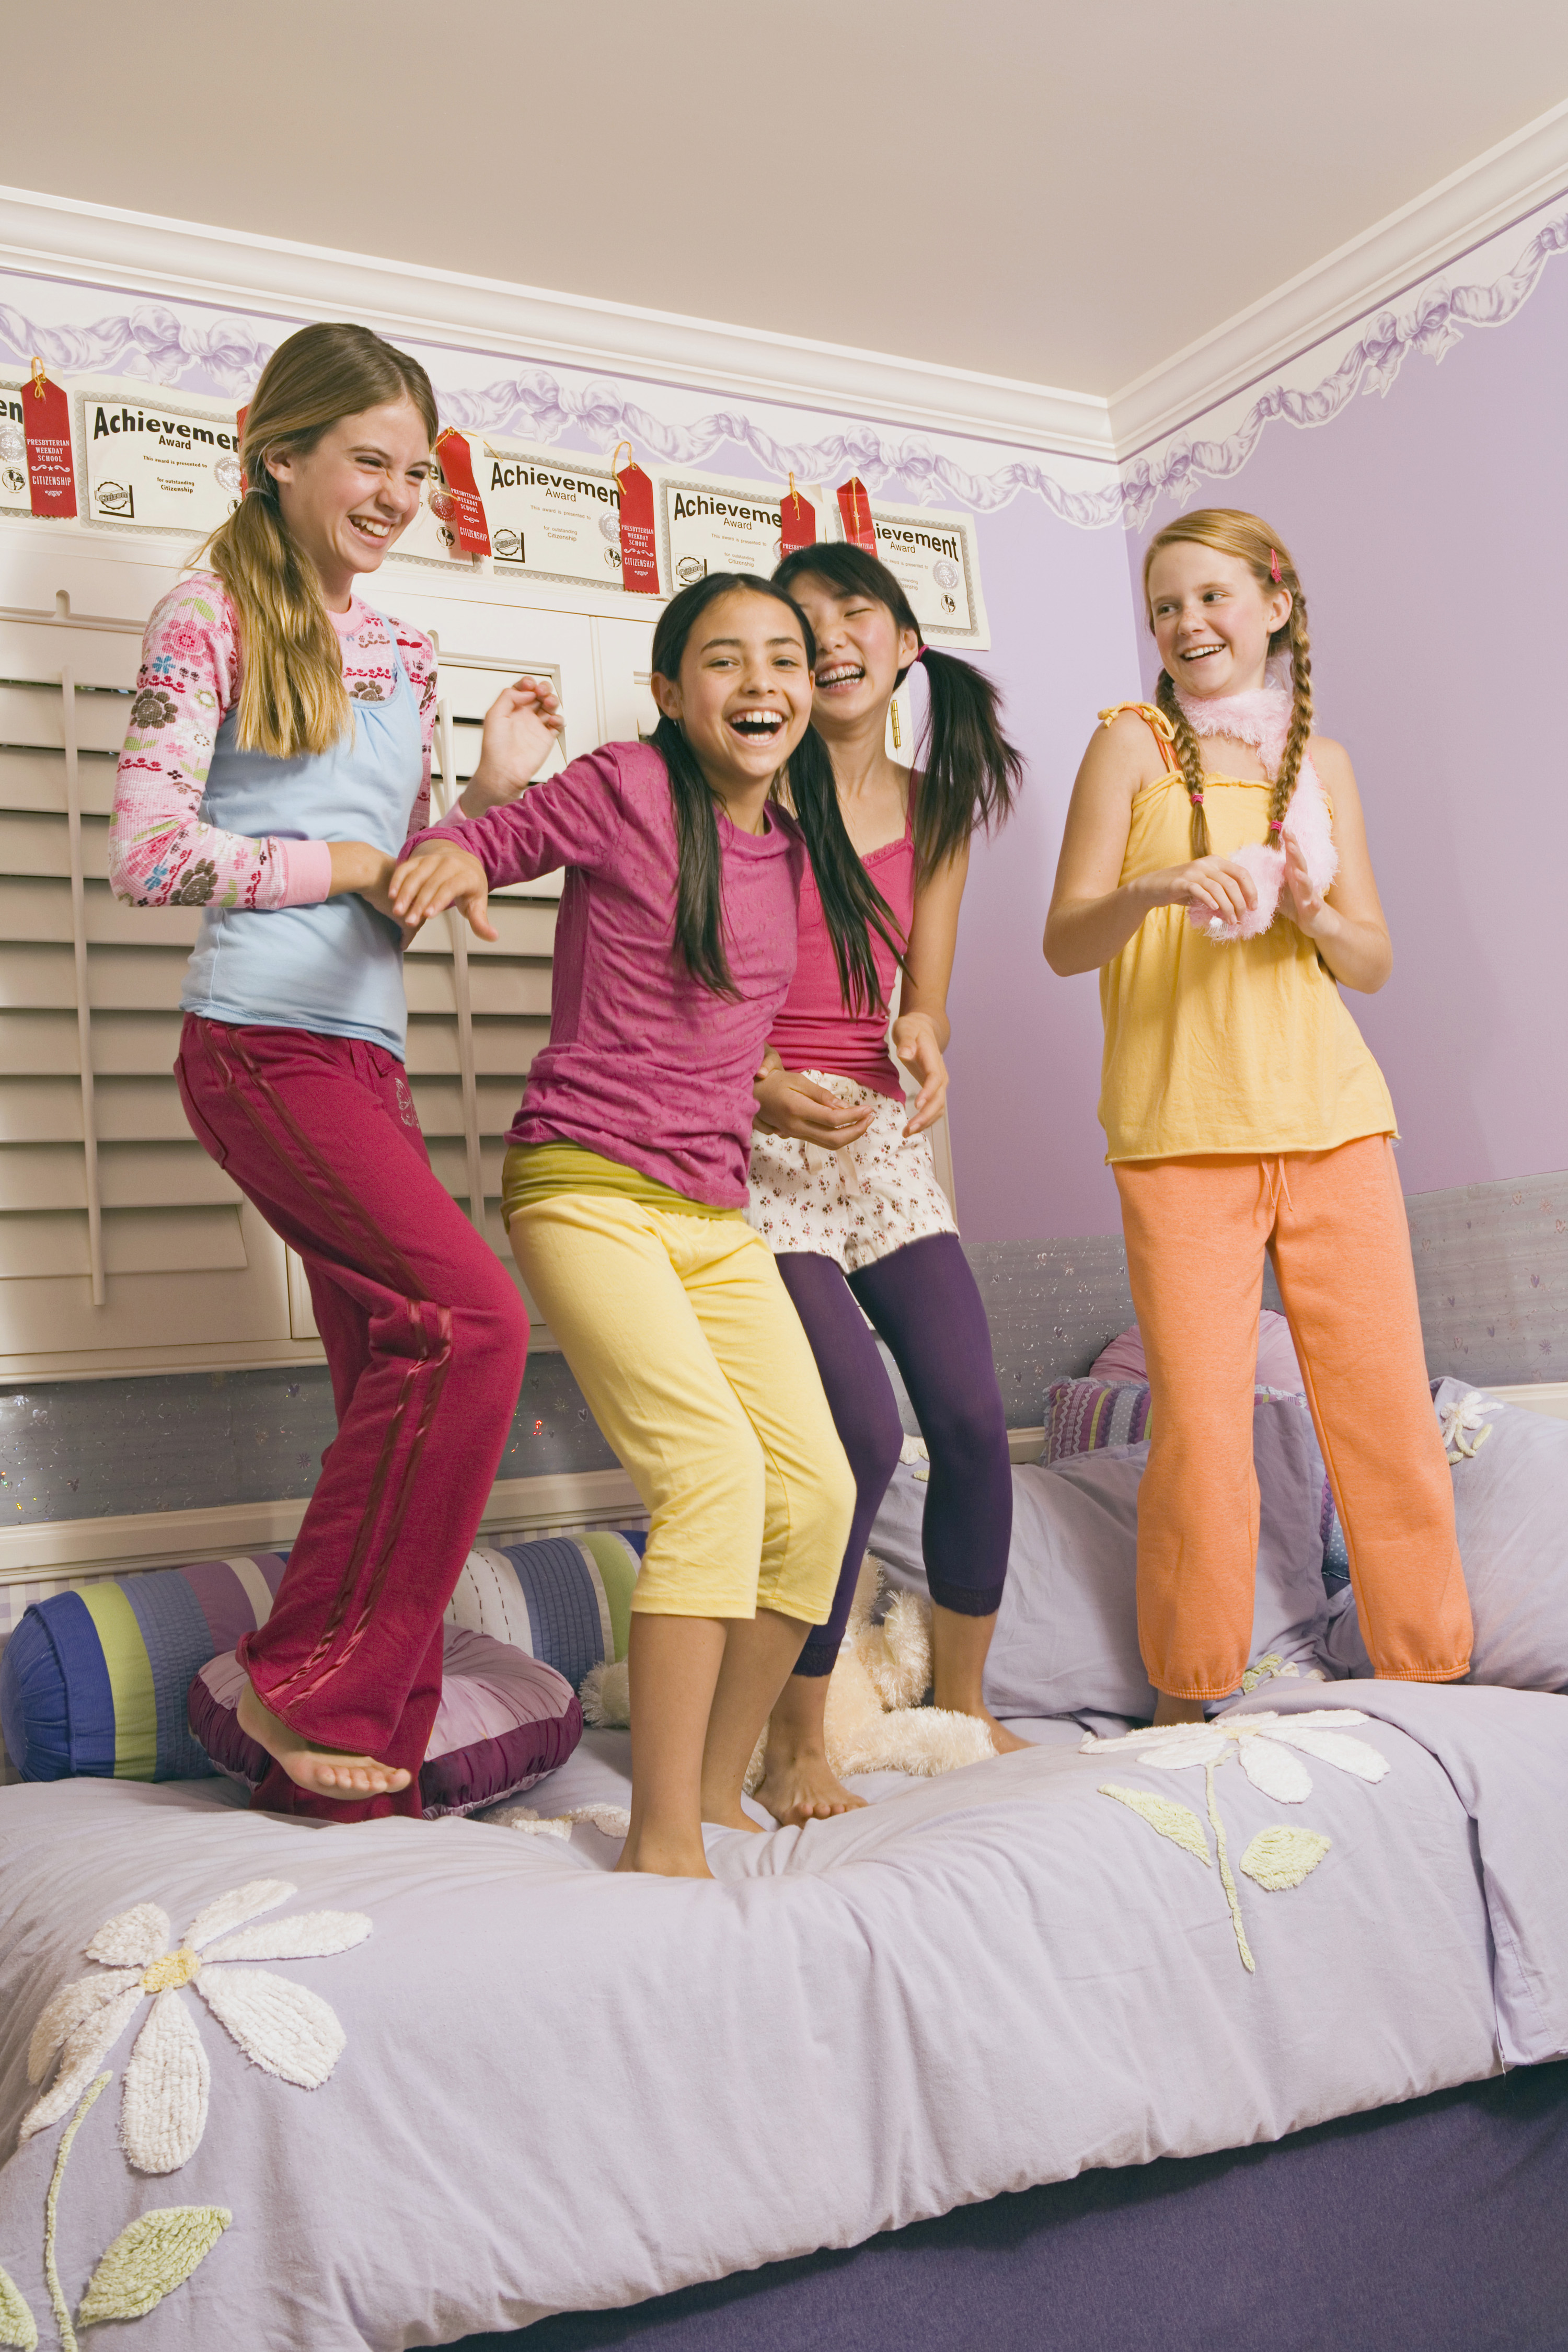 how to plan a cool sleepover